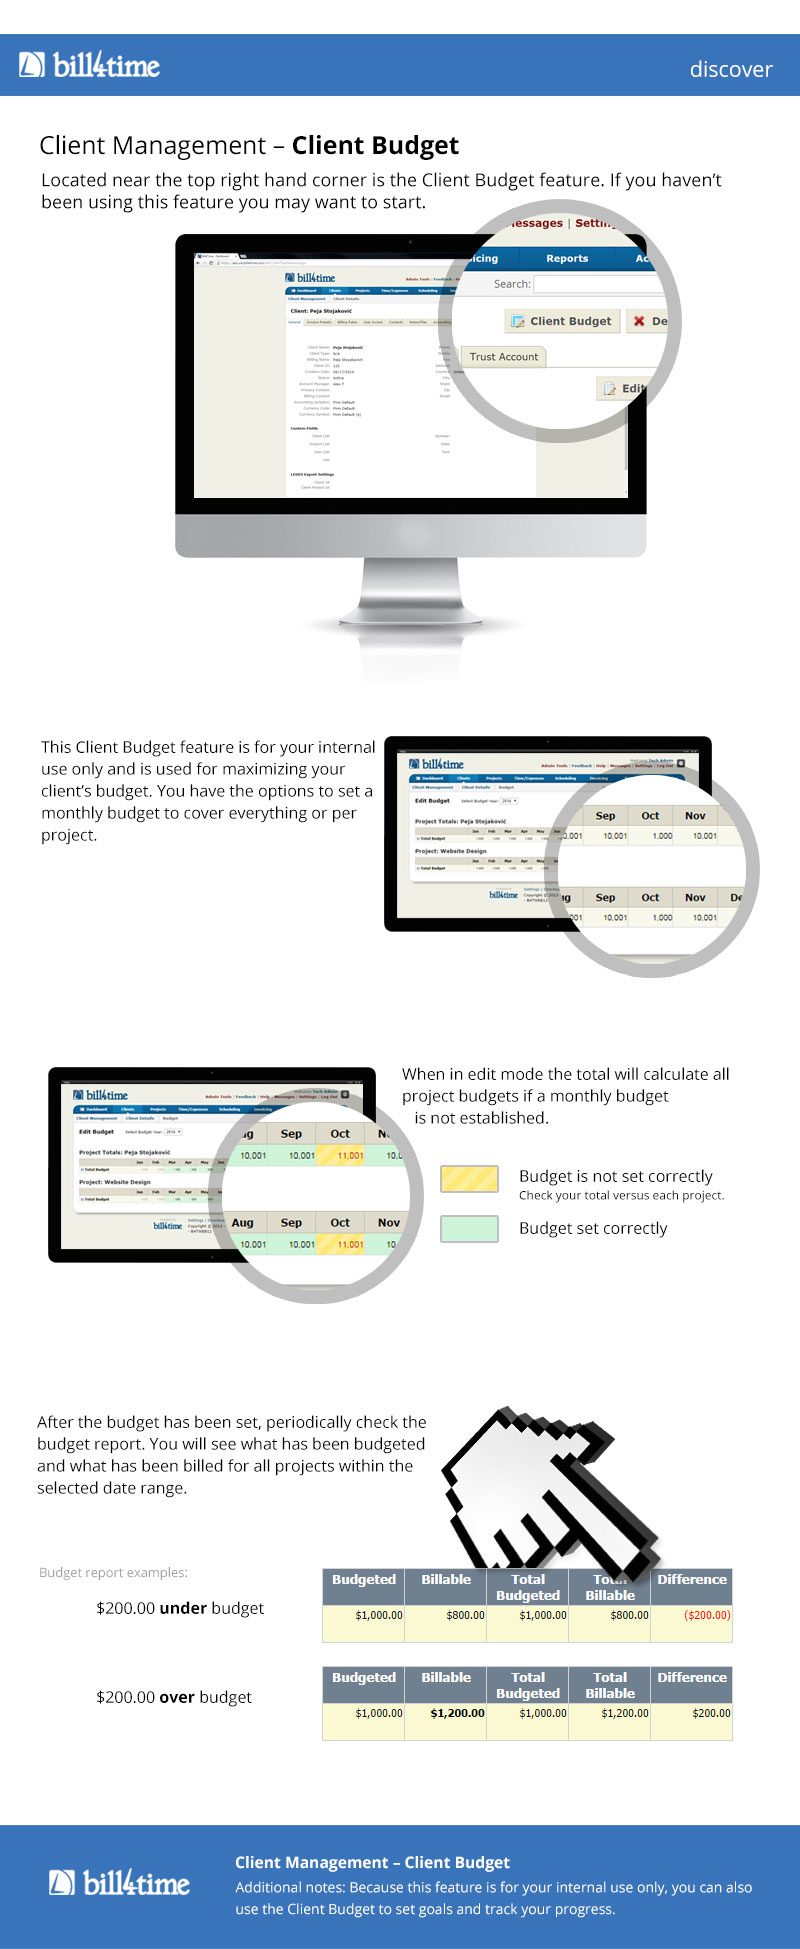 Client-Budget-Infographic